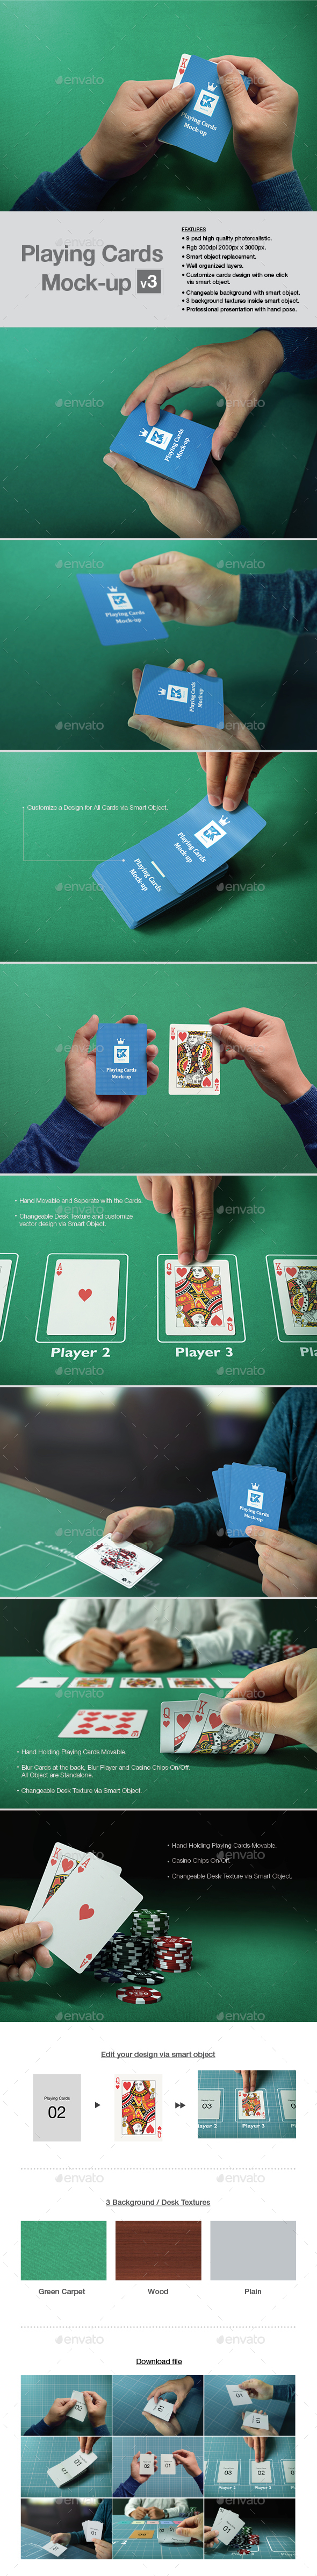 Playing Cards Mock-up v3 - Print Product Mock-Ups